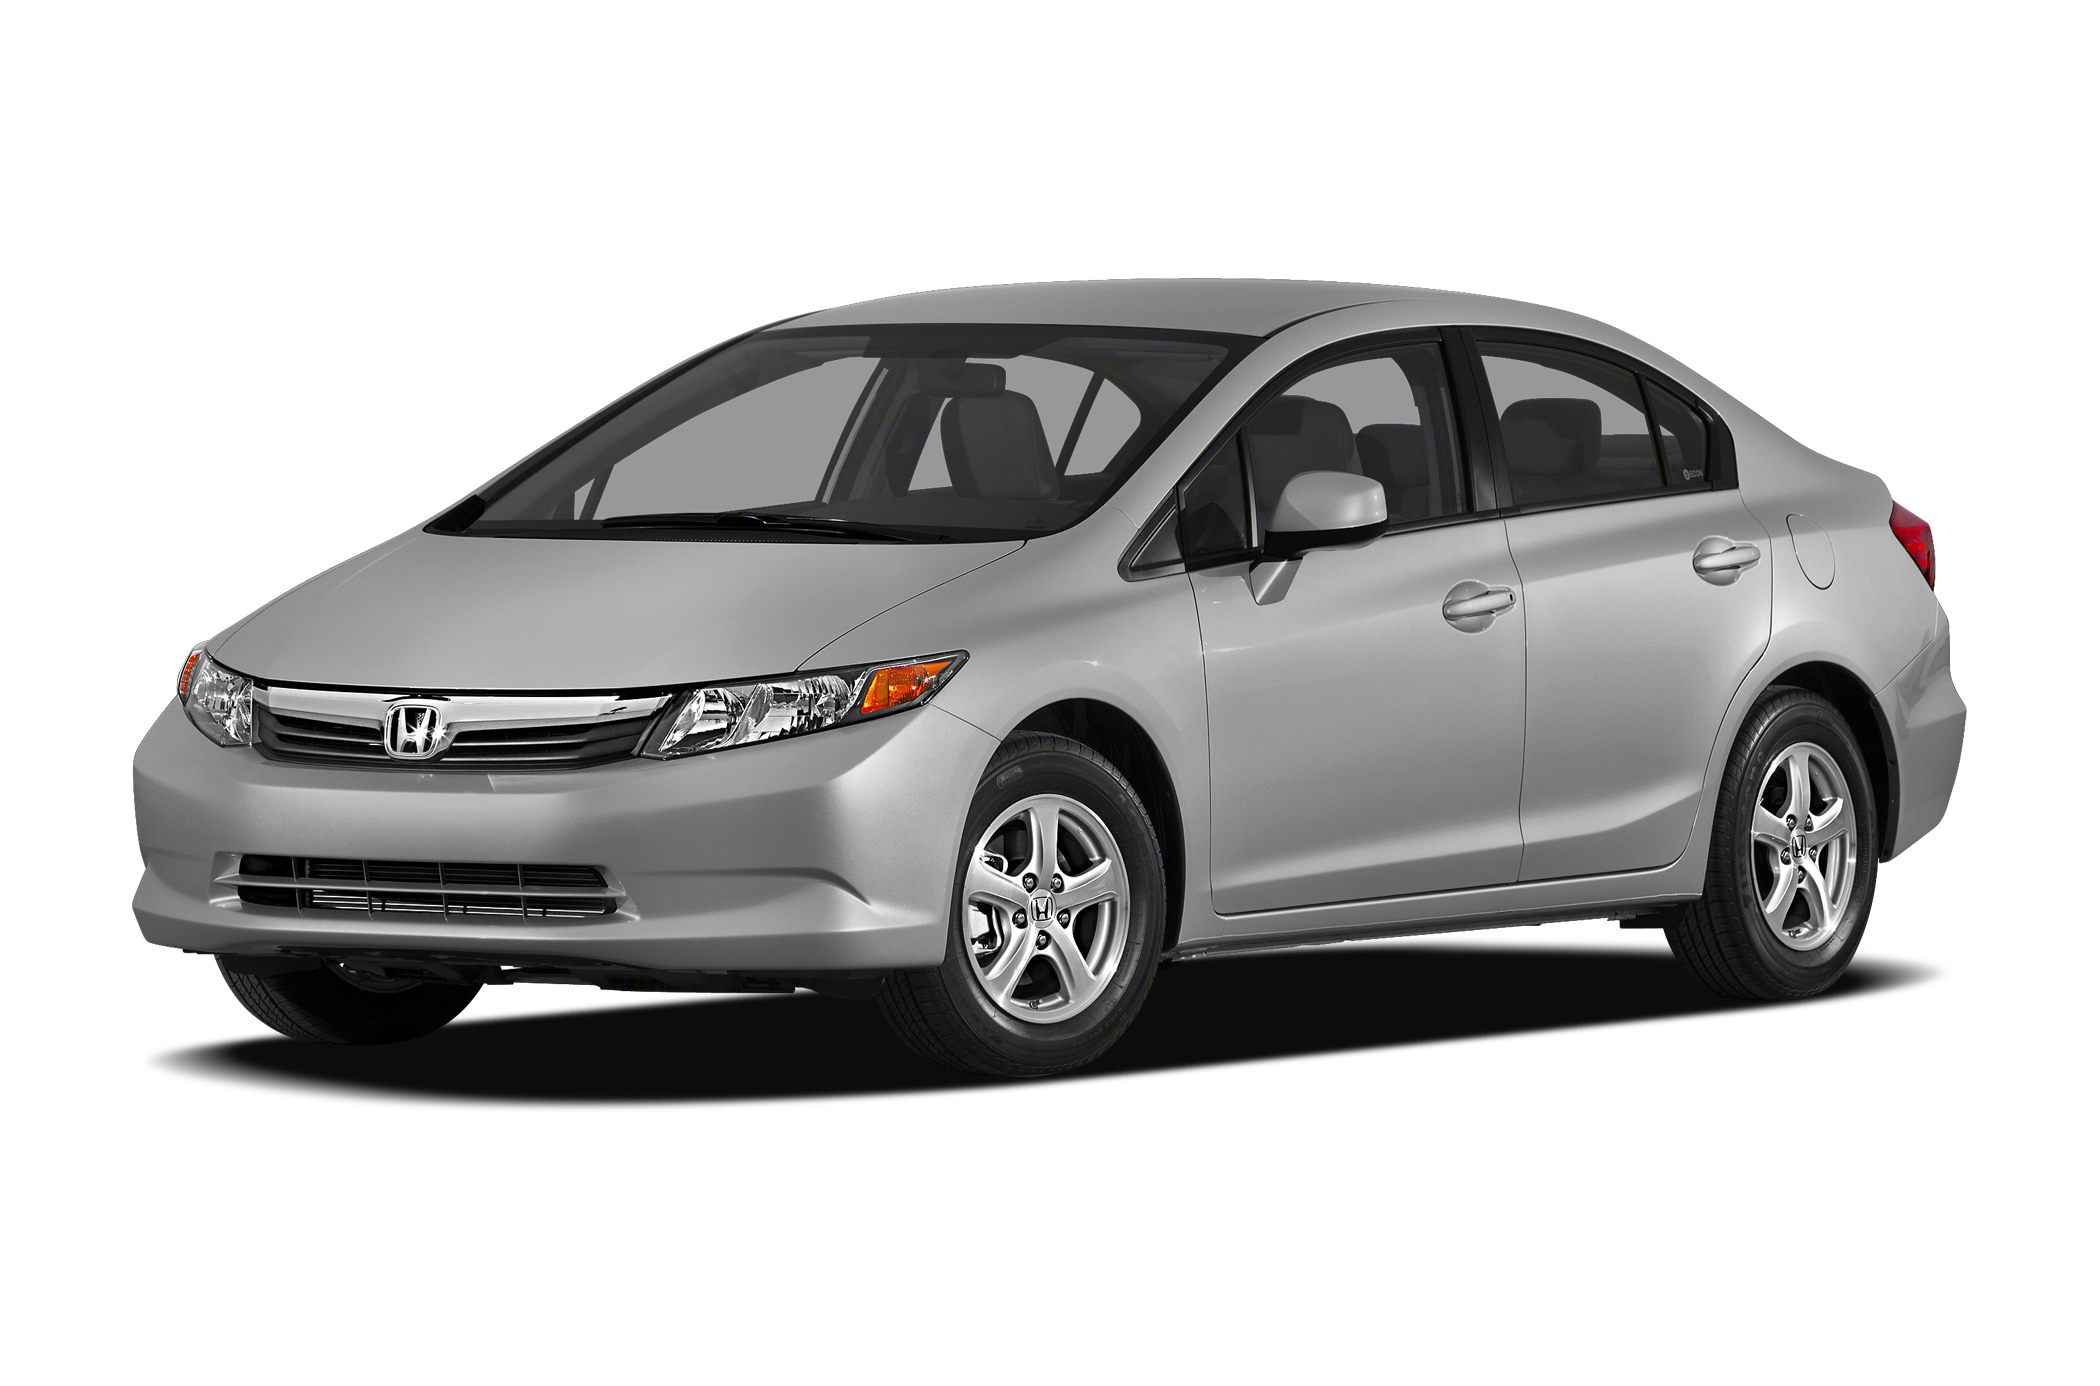 2012 Honda Civic Natural Gas Civic Natural Gas and 18L I4 SOHC 16V i-VTEC Theres no substitute